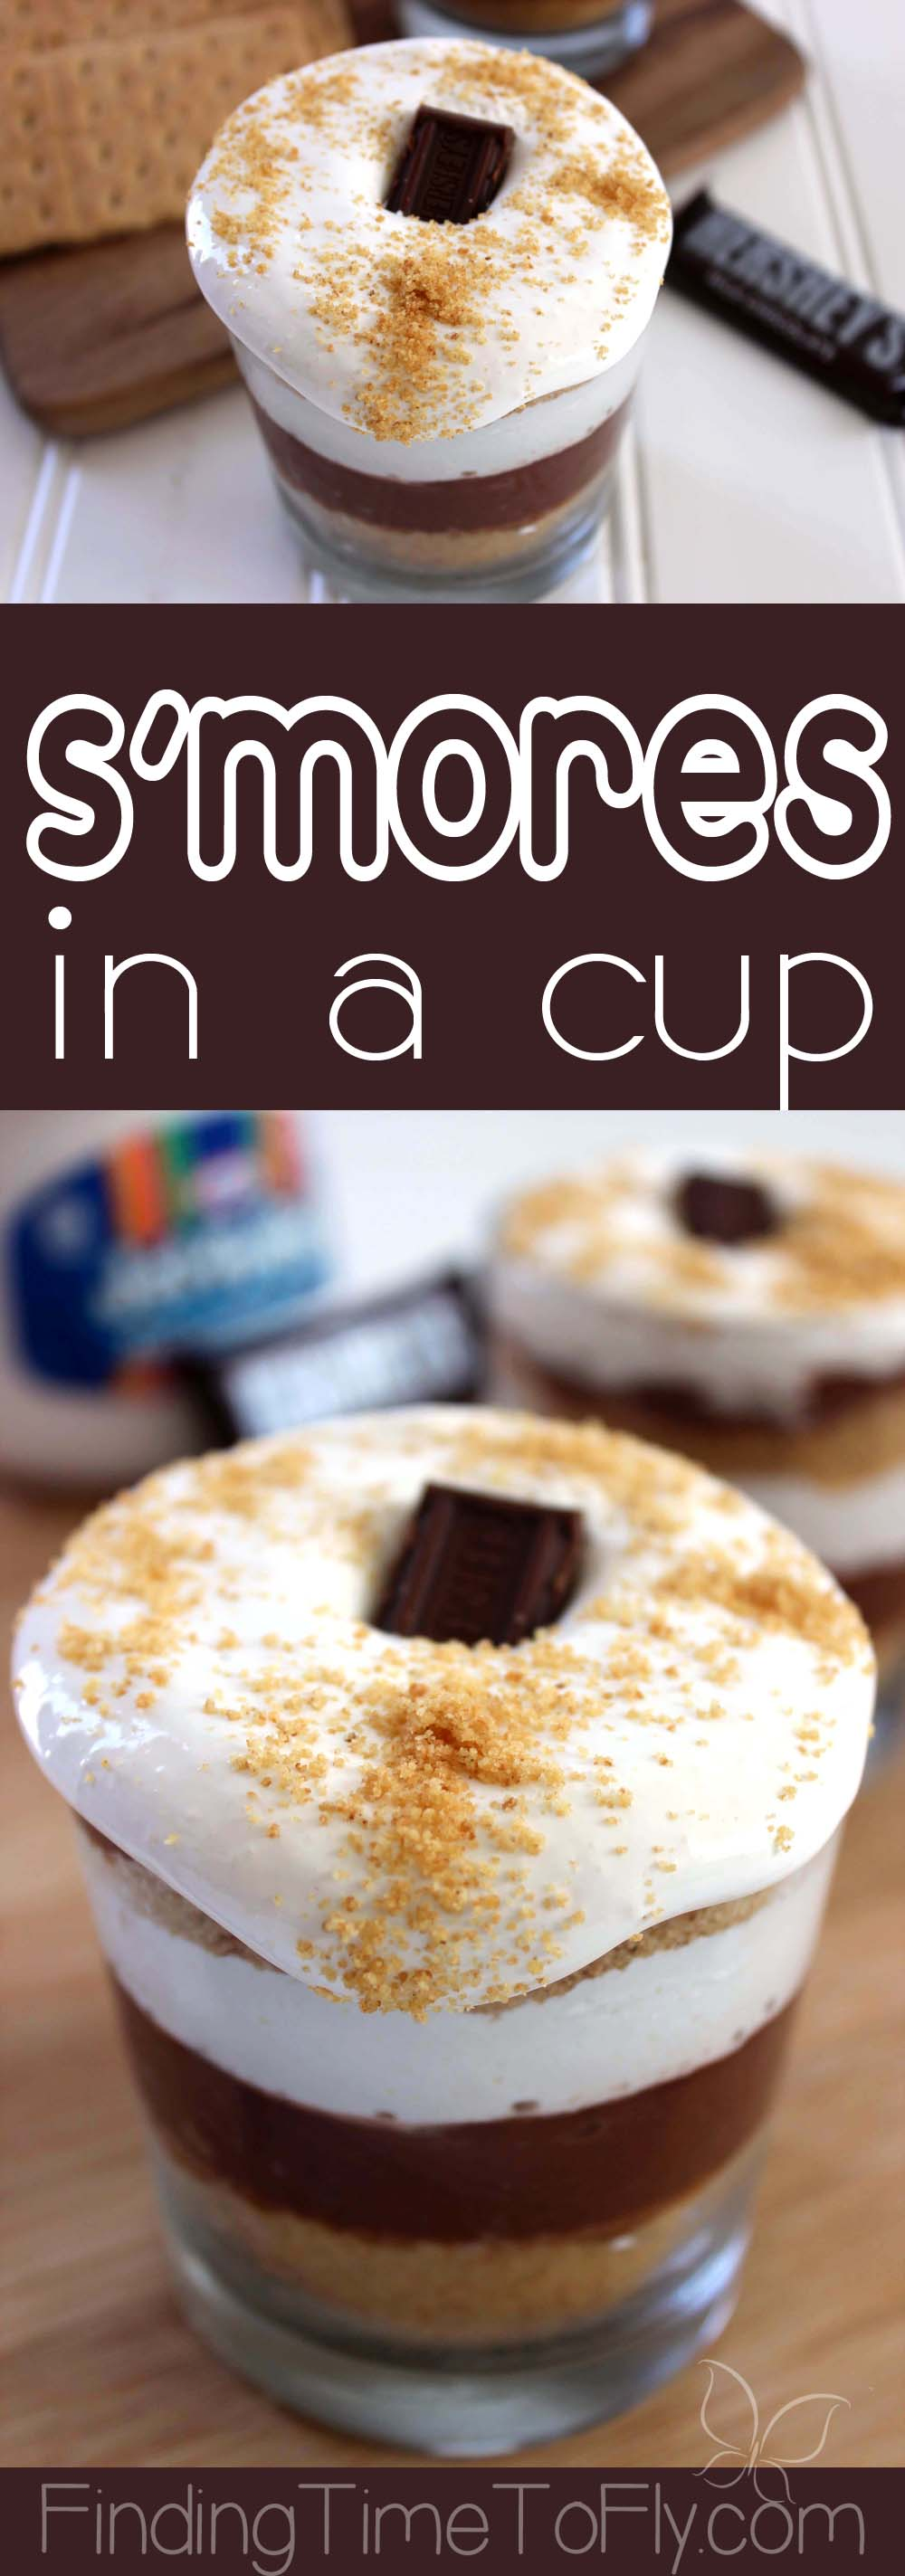 This dressed up S'mores in a cup is so easy! The kids will love this dessert. Saving this.